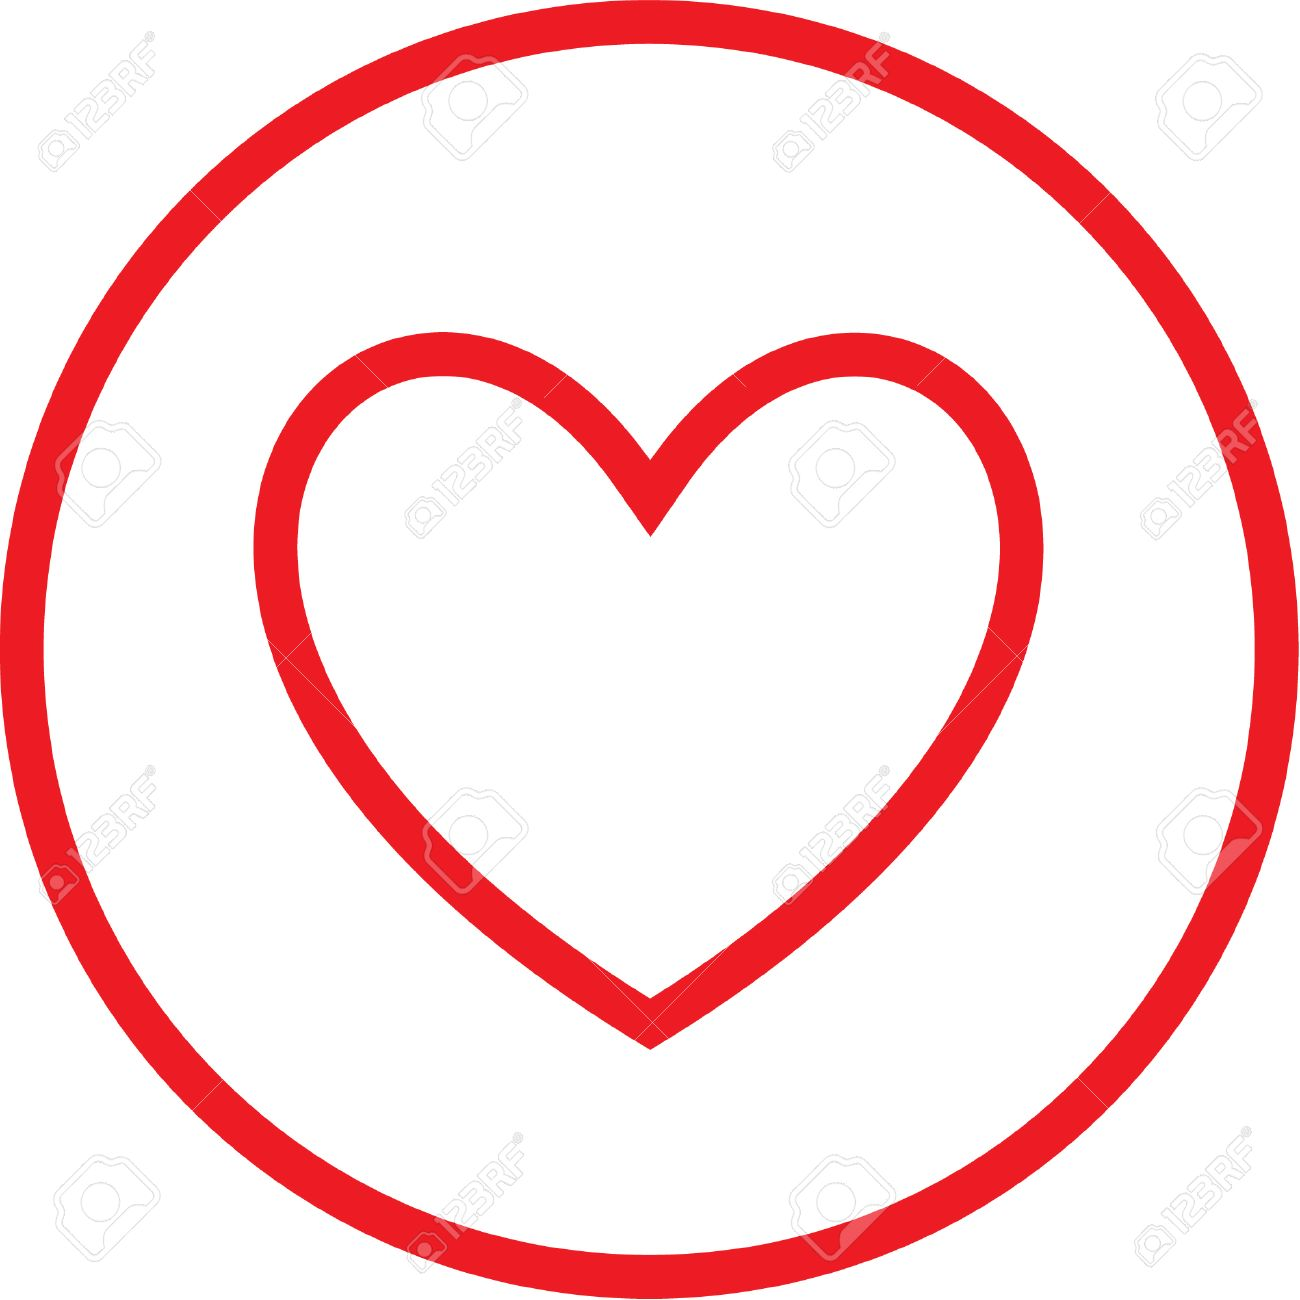 vector heart icon red and white simply change royalty free rh 123rf com heart icon vector image heart icon vector illustrator